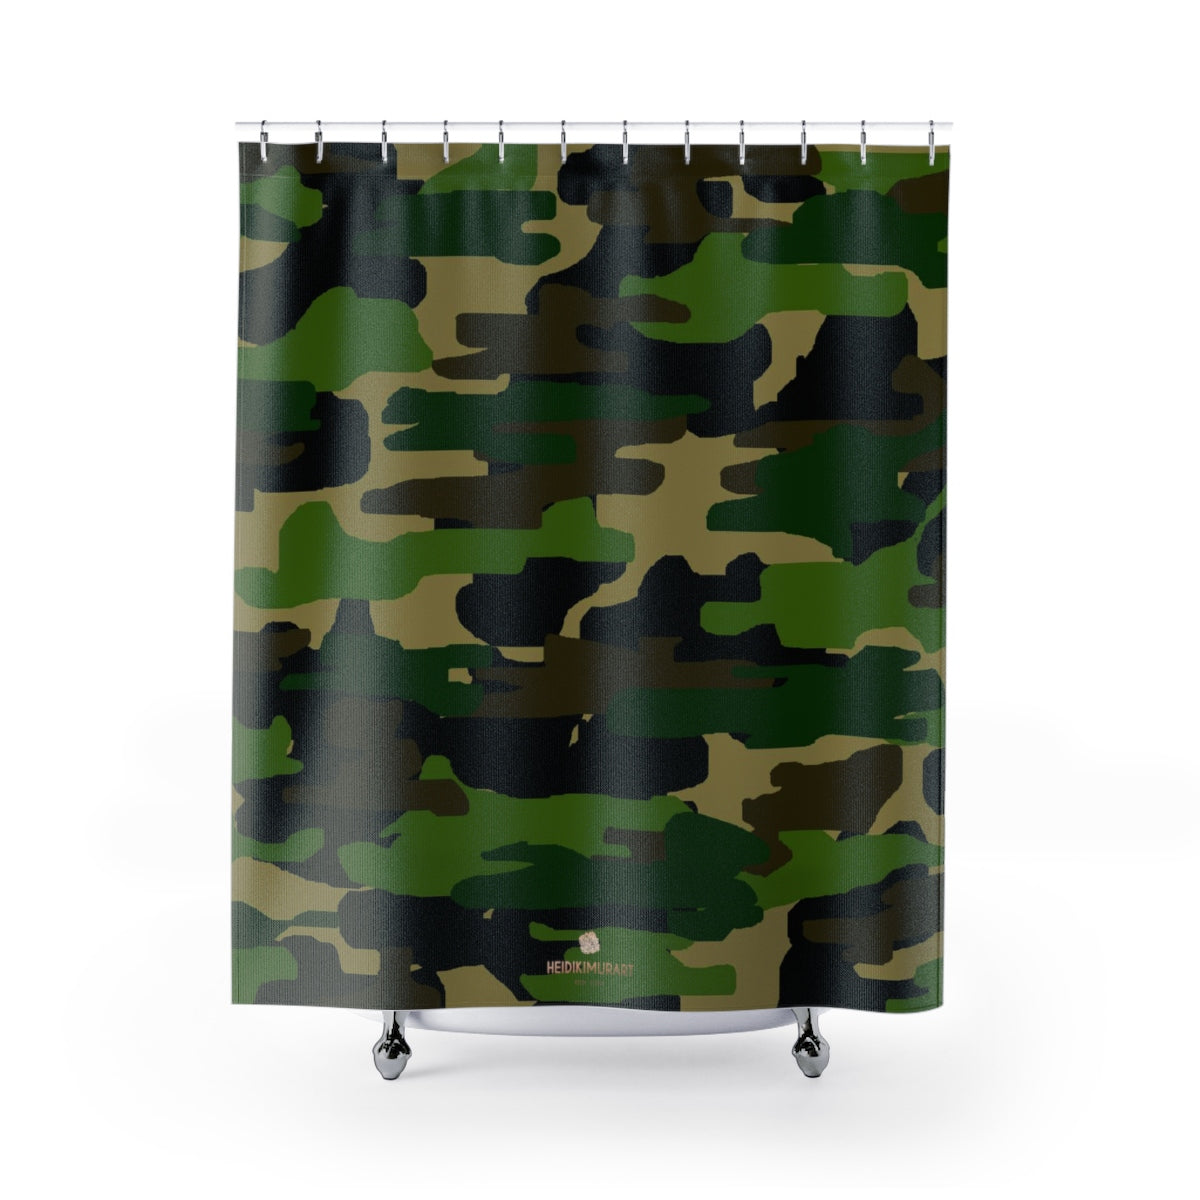 Green Camouflage Camo Army Military Print Large 71x74 inches Shower Curtains-Shower Curtain-71x74-Heidi Kimura Art LLC Green Camouflage Shower Curtains, Camouflage Army Military Print Designer Polyester Large 100% Polyester 71x74 inches Shower Curtains- Printed in USA